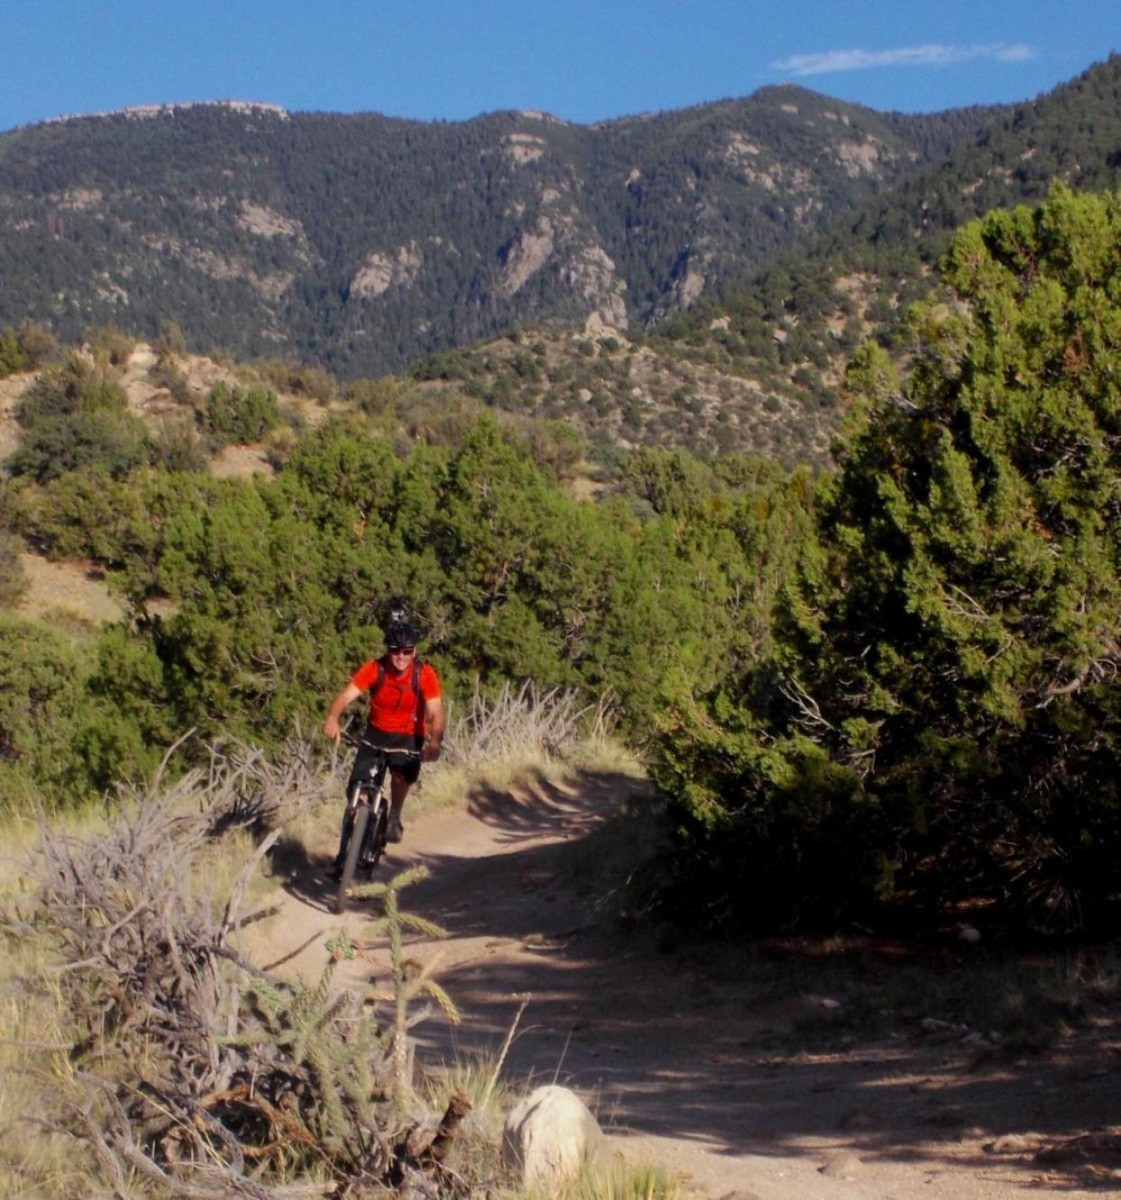 The more adventurous novice will find much to like in Albuquerque's Foothills. (photo: mcreel)